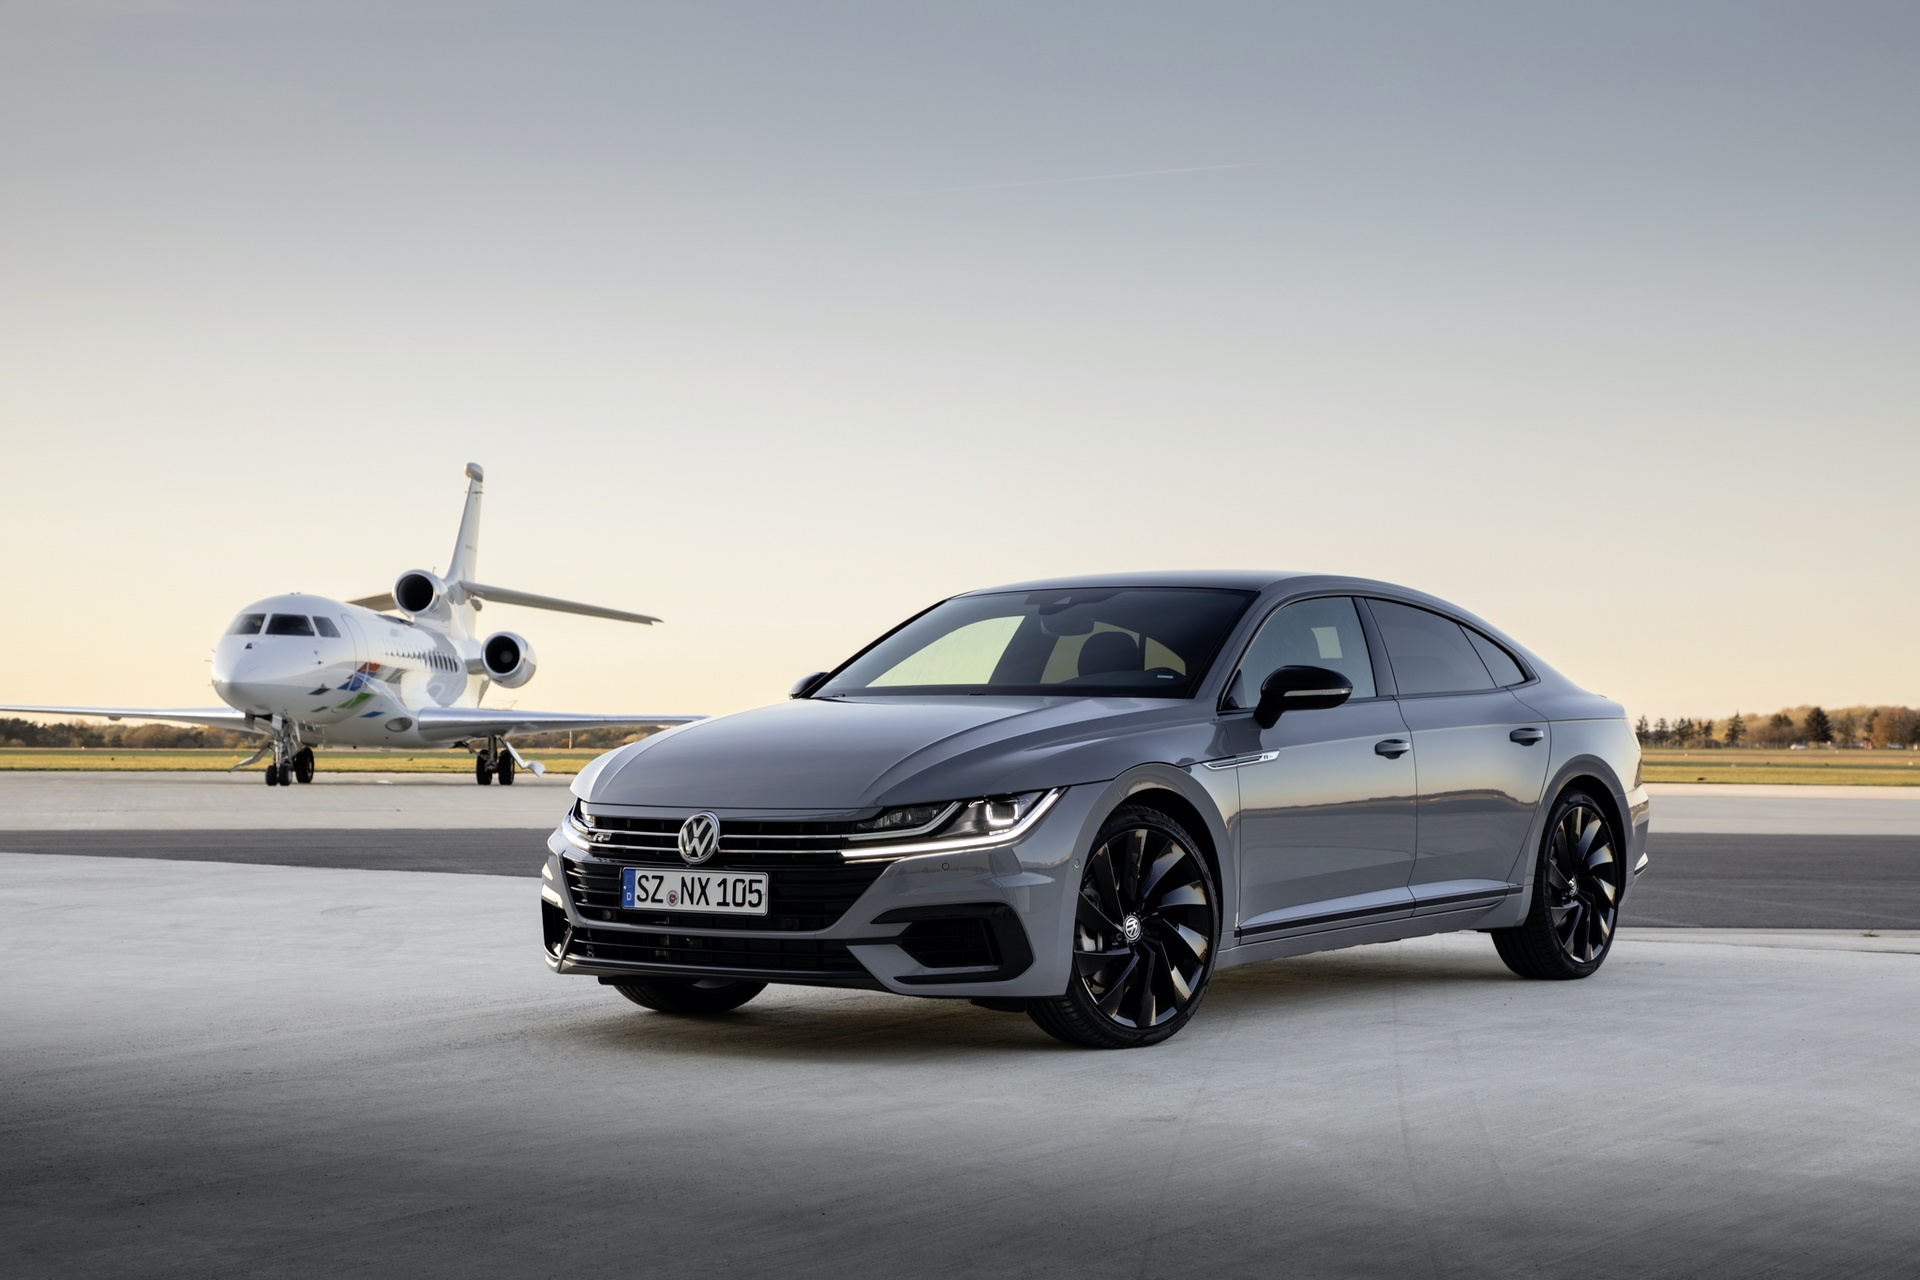 The new Volkswagen Arteon Limited Edition